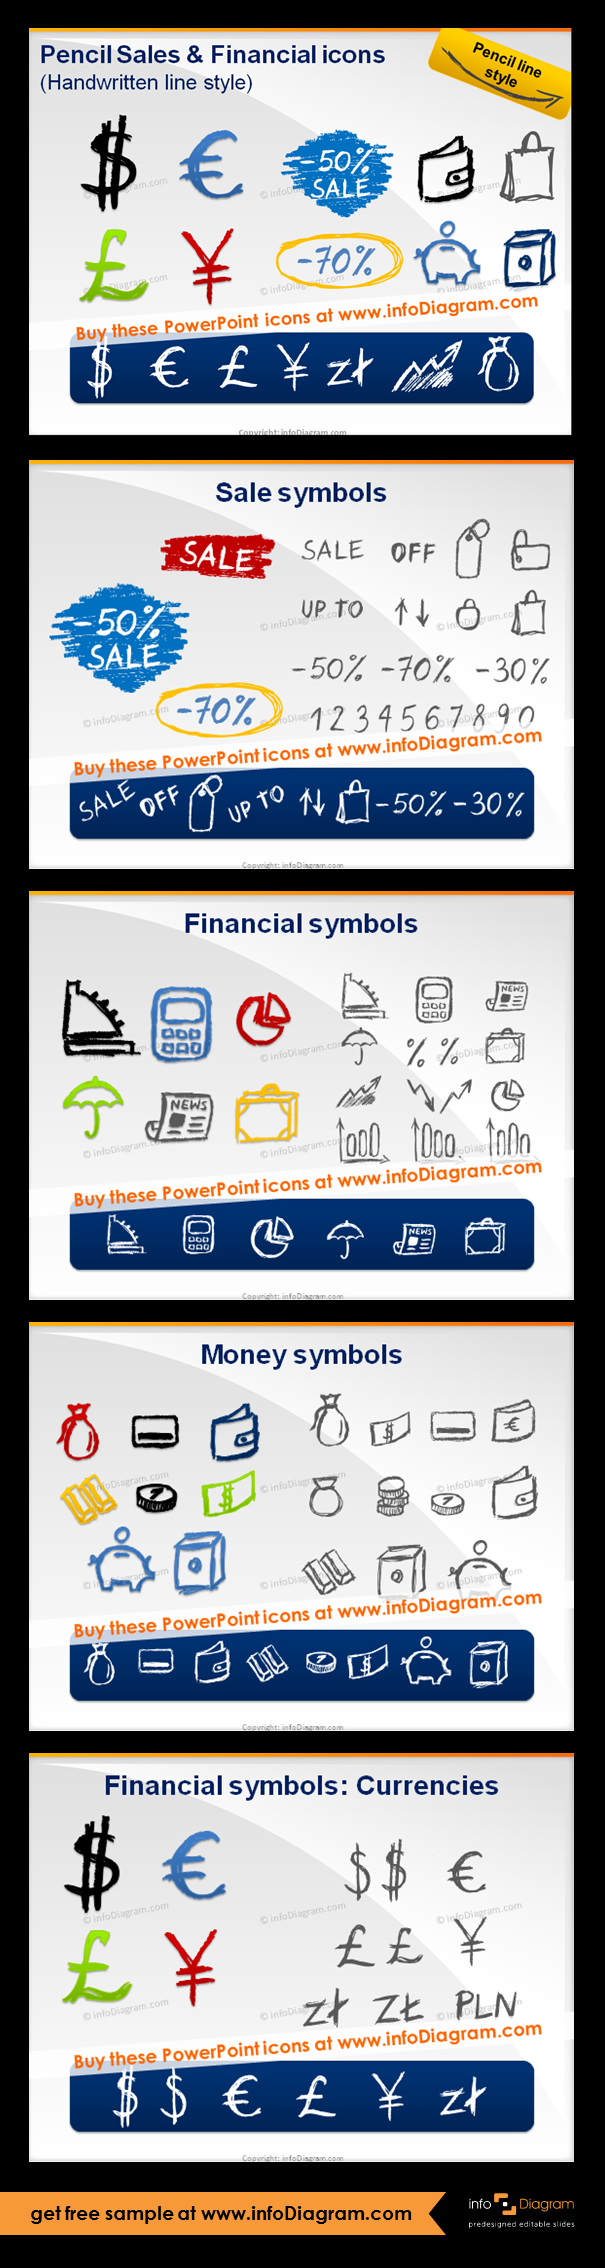 Pencil sales and financial symbols ppt icons clipart euro handwritten graphical elements for powerpoint pencil sketch symbols for sales and finance sale symbols bag doodled by pencil discount numbers off biocorpaavc Gallery